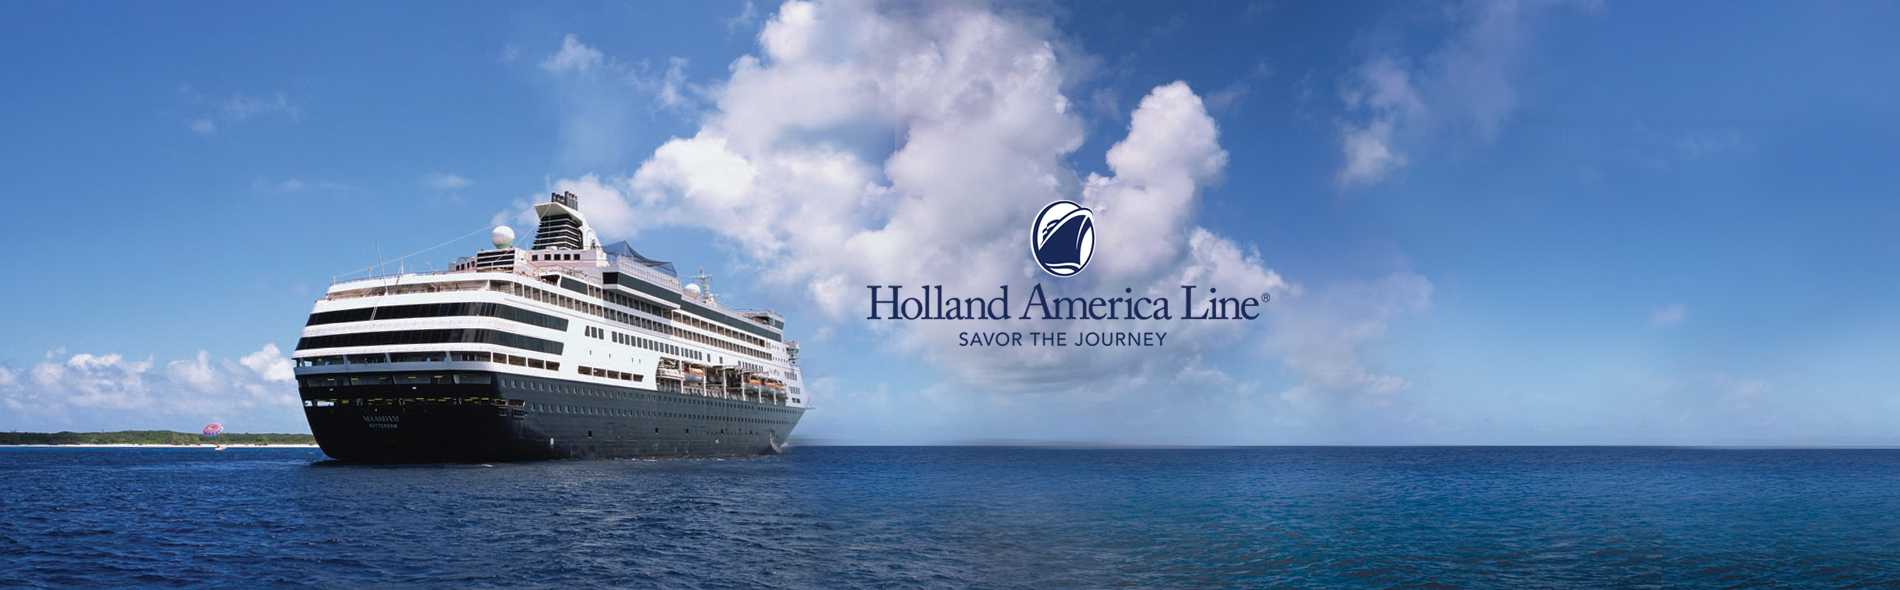 Holland america line cruises l ama travel for High end cruise lines